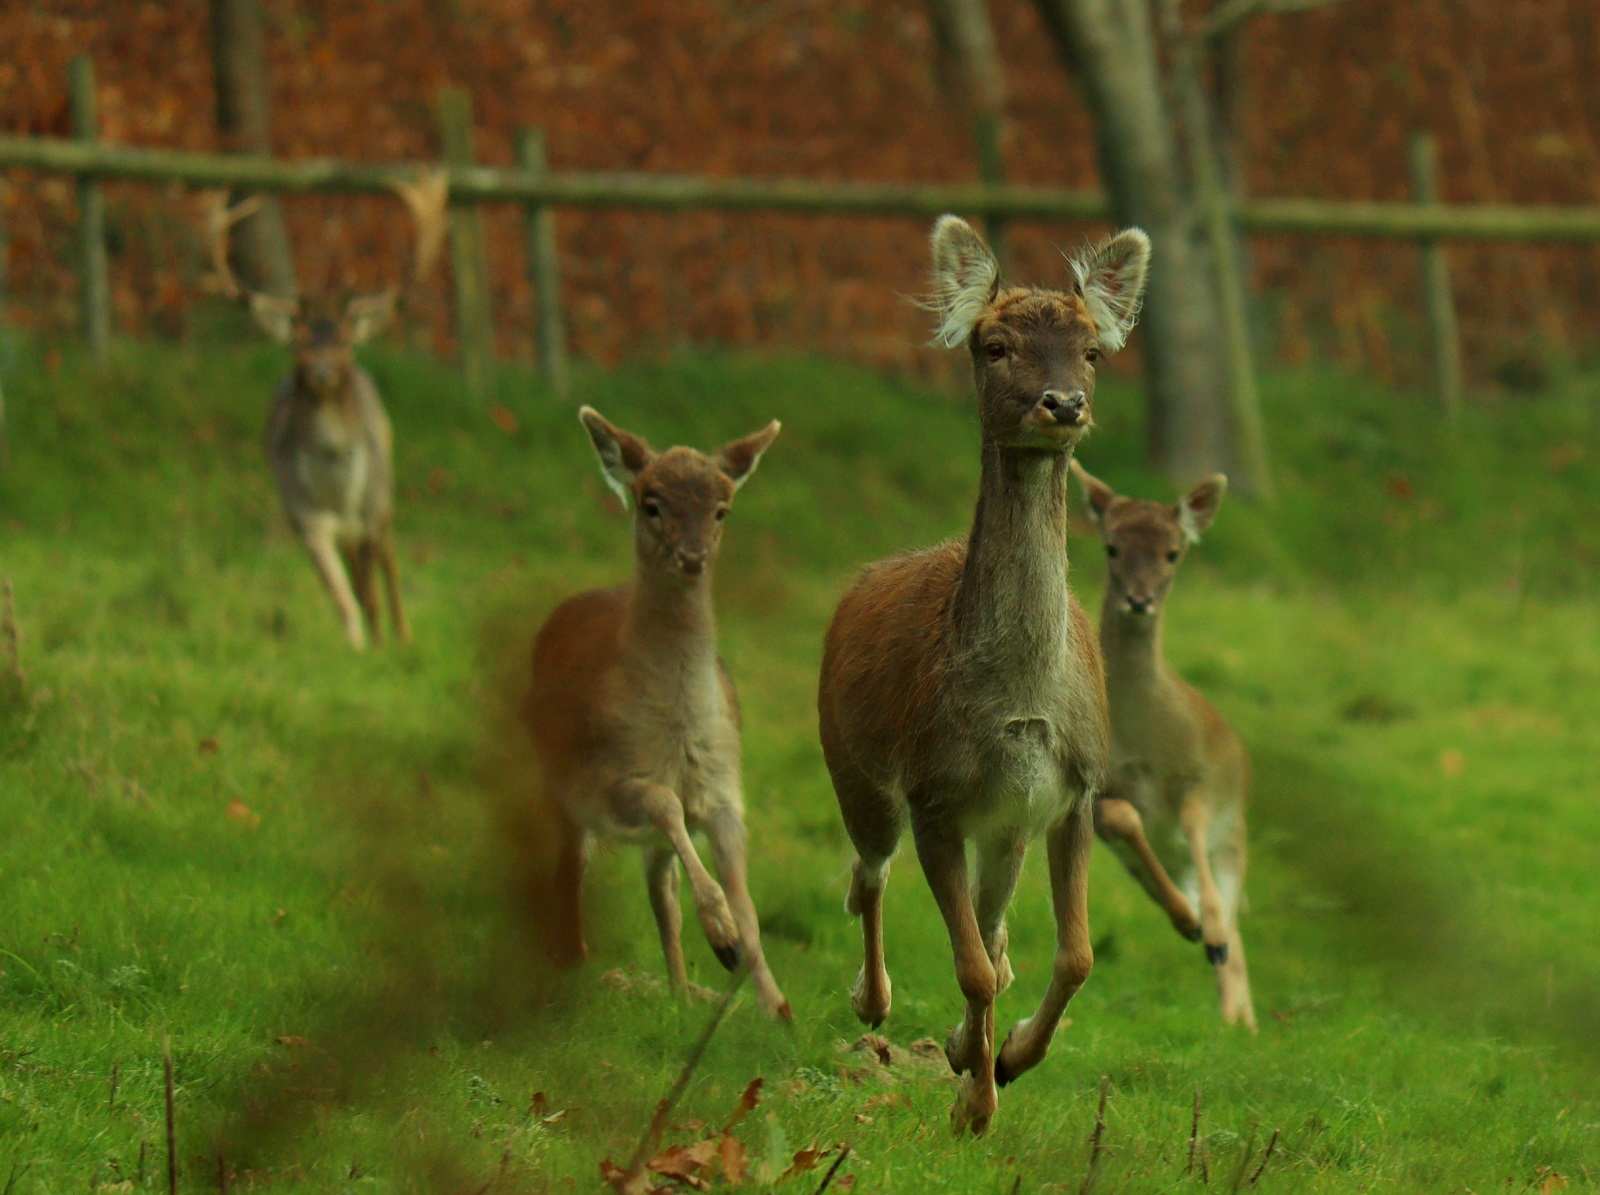 High quality entries hailed for Knighton nature photography contest